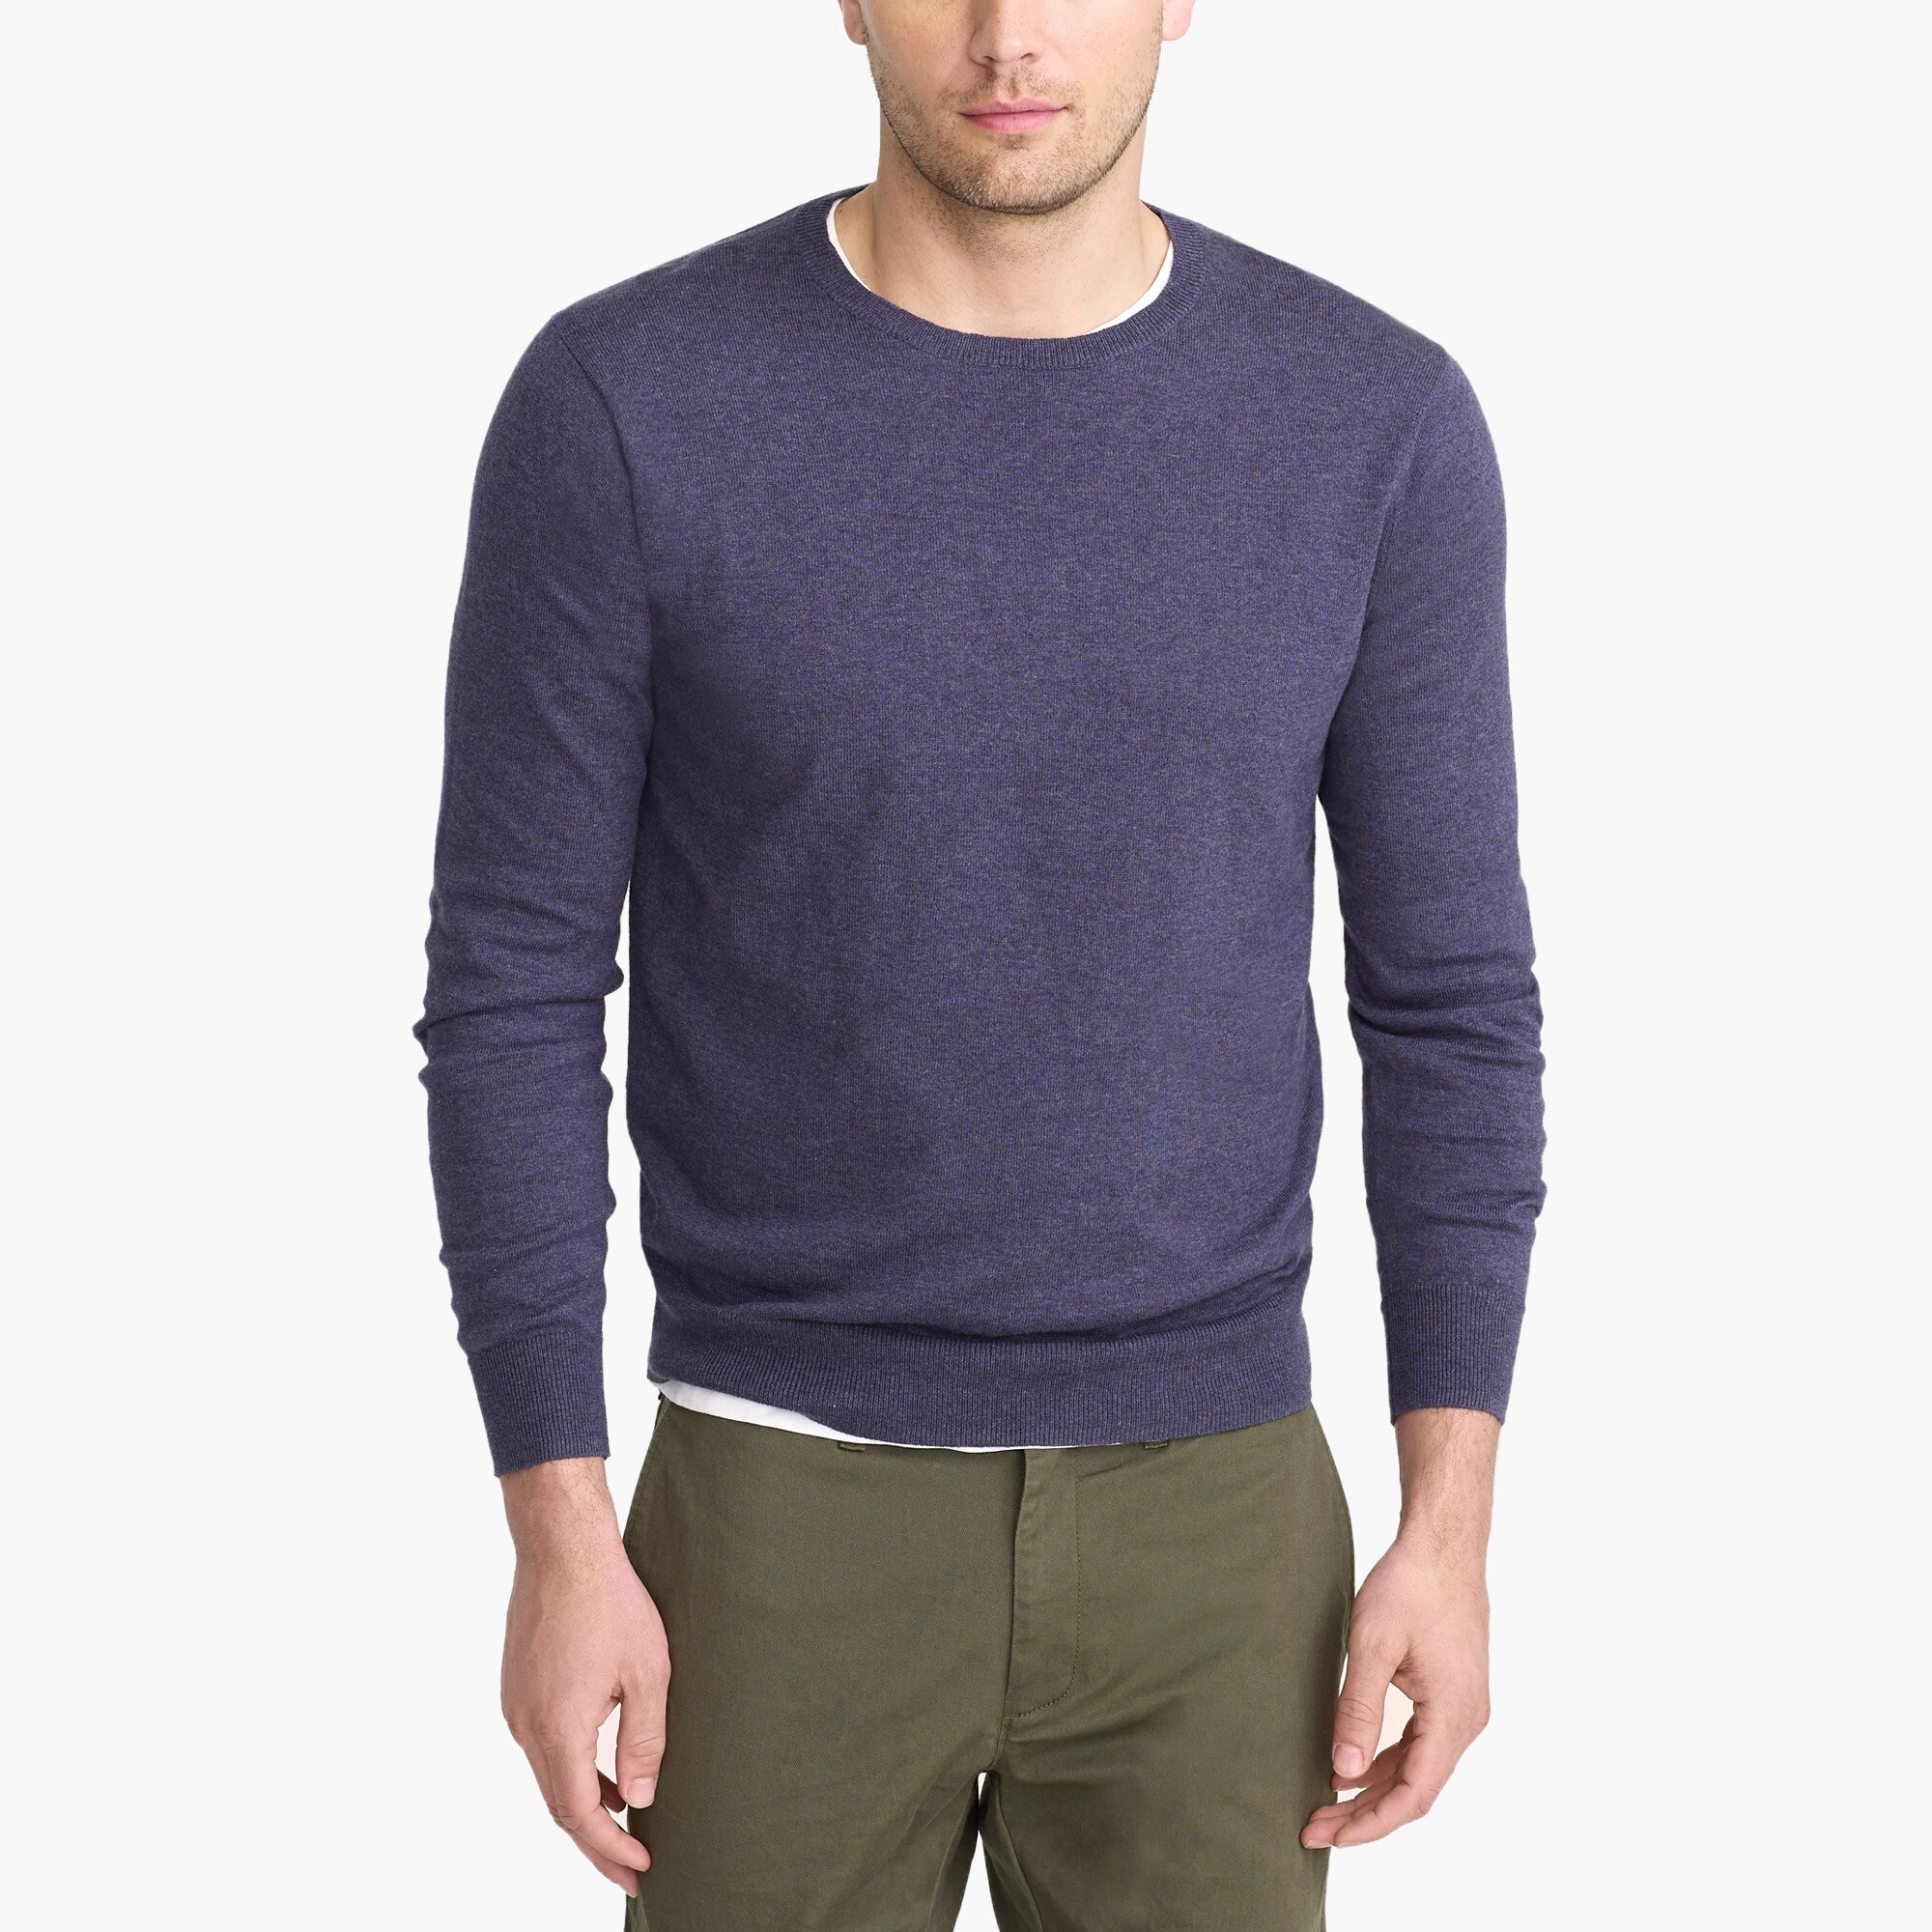 factory mens Cotton jersey crewneck sweater